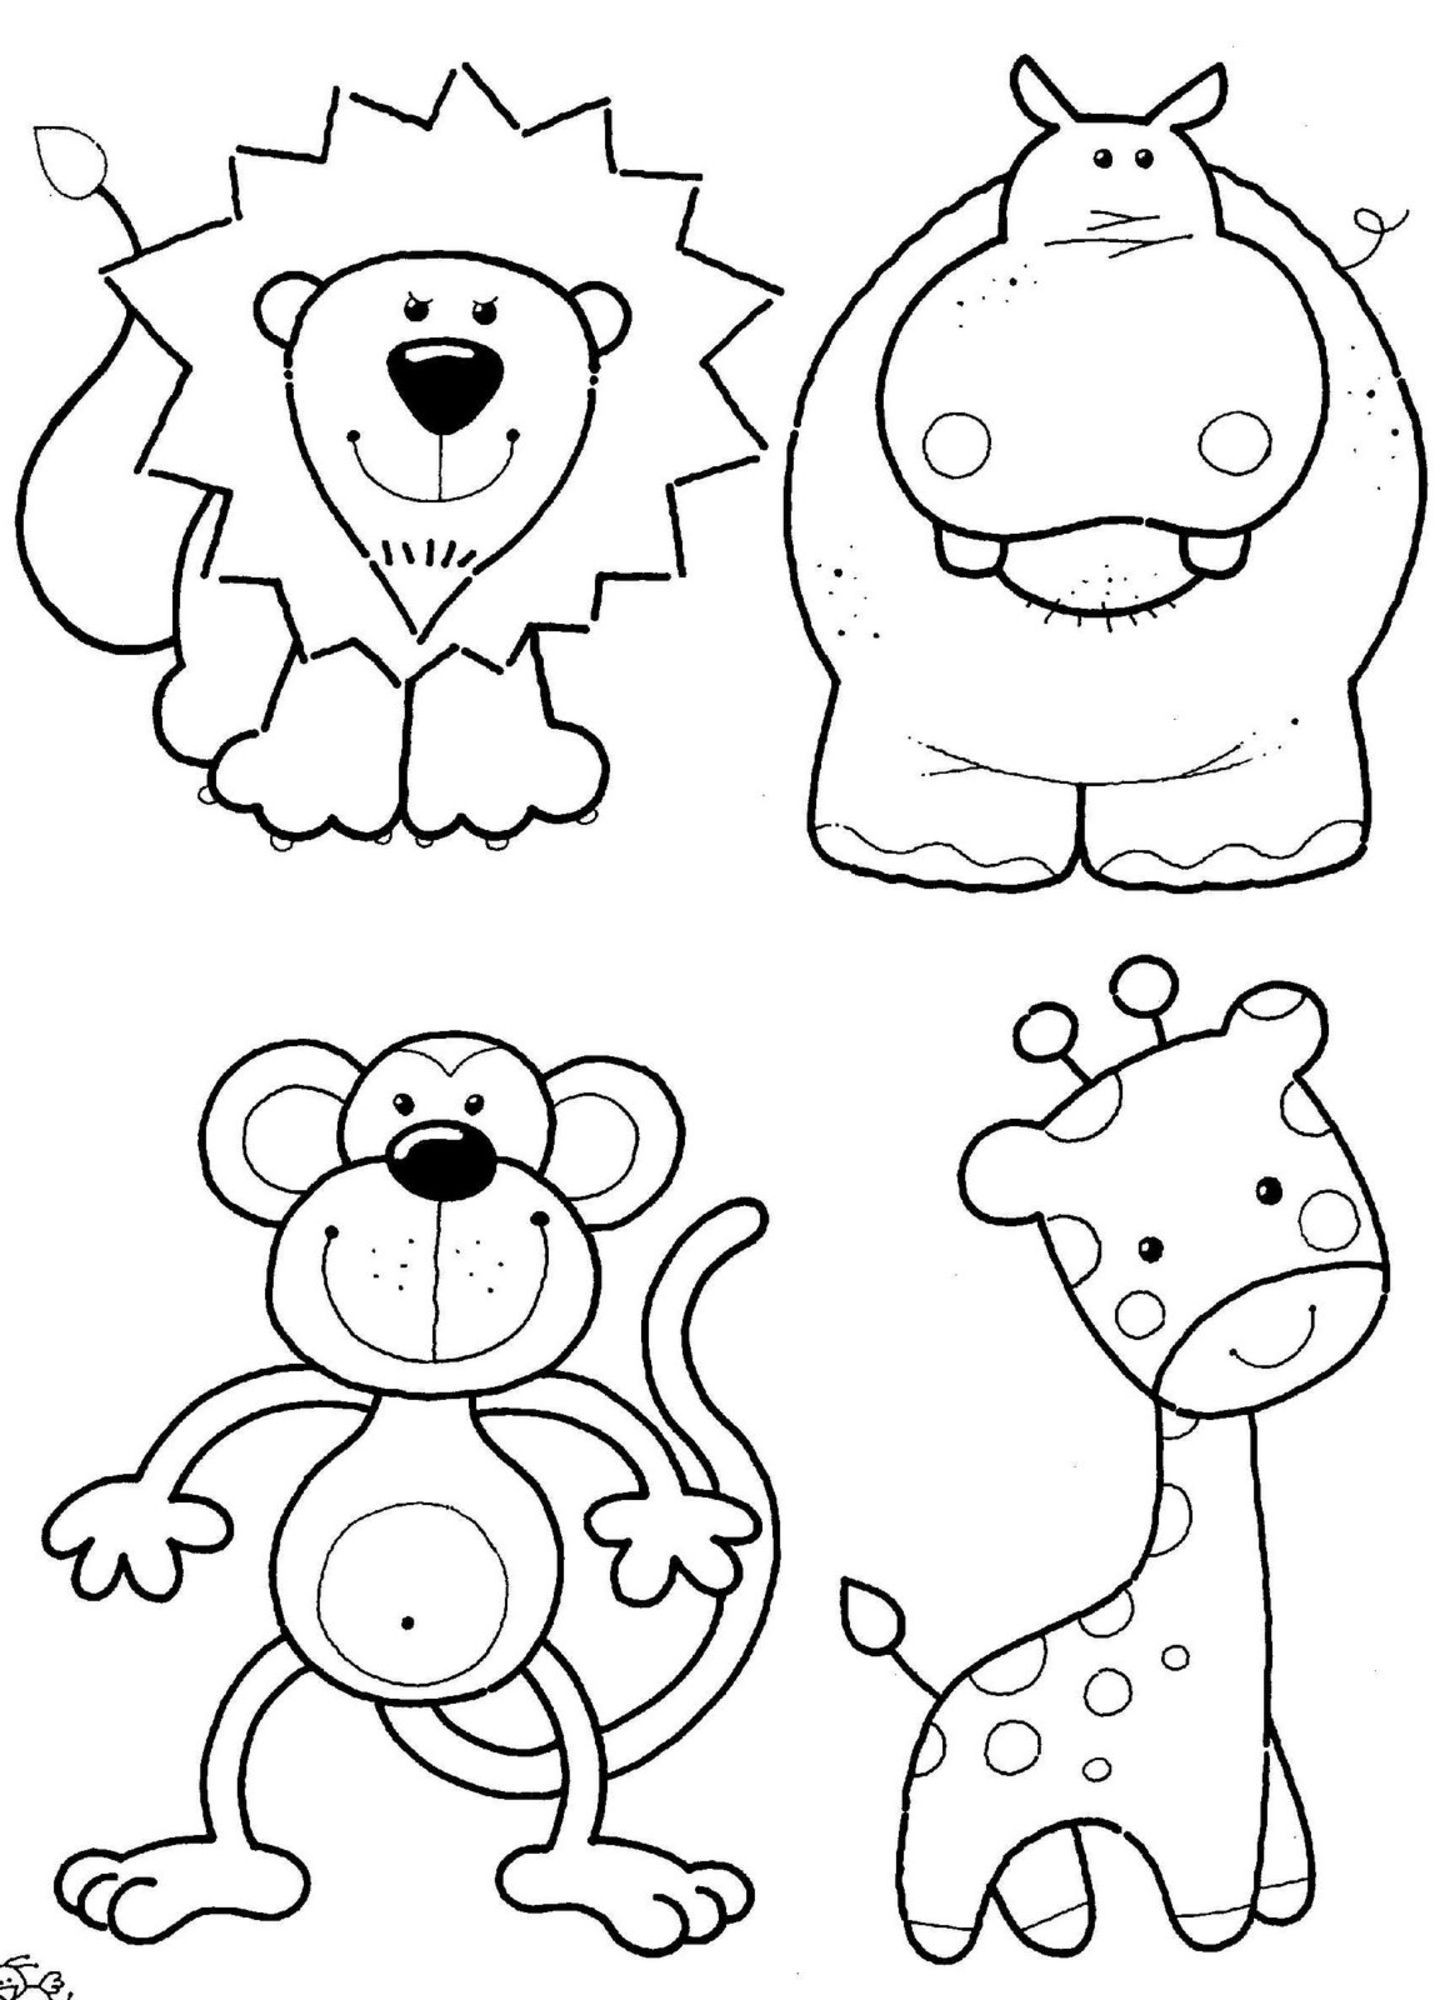 coloring pages for preschool top 25 free printable preschool coloring pages online coloring preschool pages for